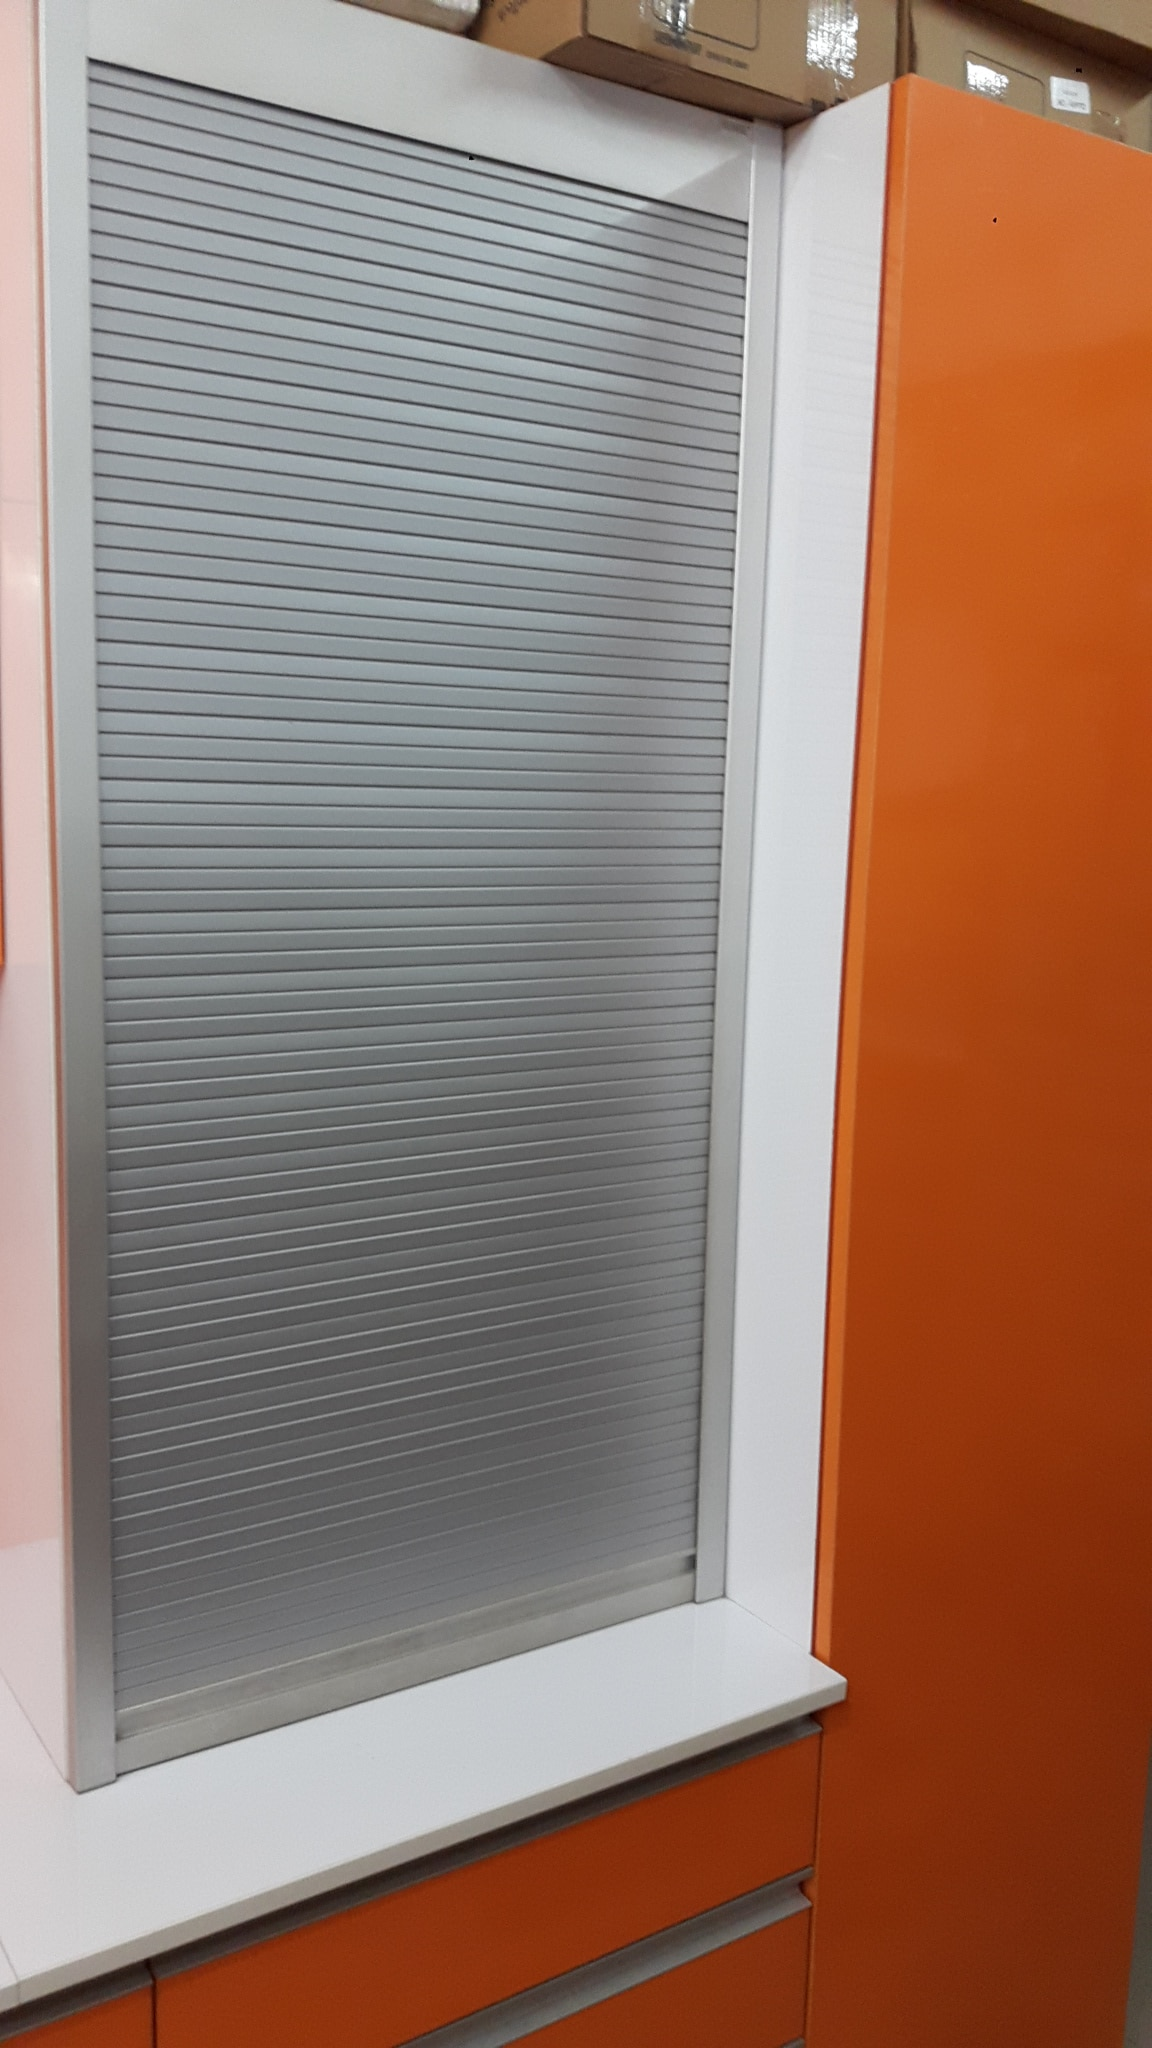 ROLLING SHUTTERS IN DIFFERENT COLORS